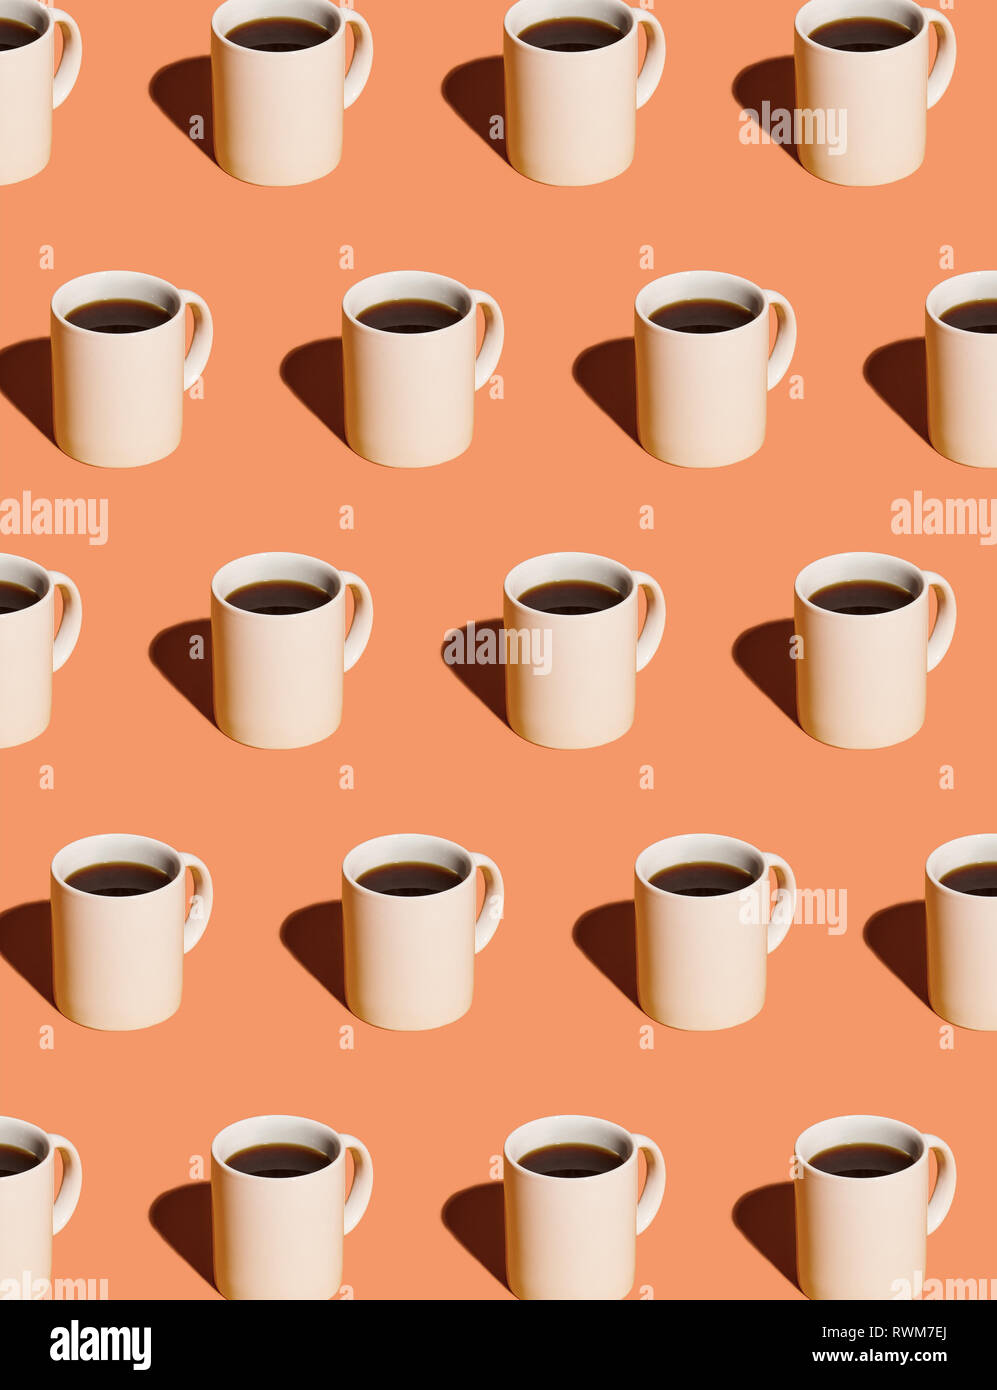 mugs of black coffee in rows against peach background stock photo alamy https www alamy com mugs of black coffee in rows against peach background image239546122 html